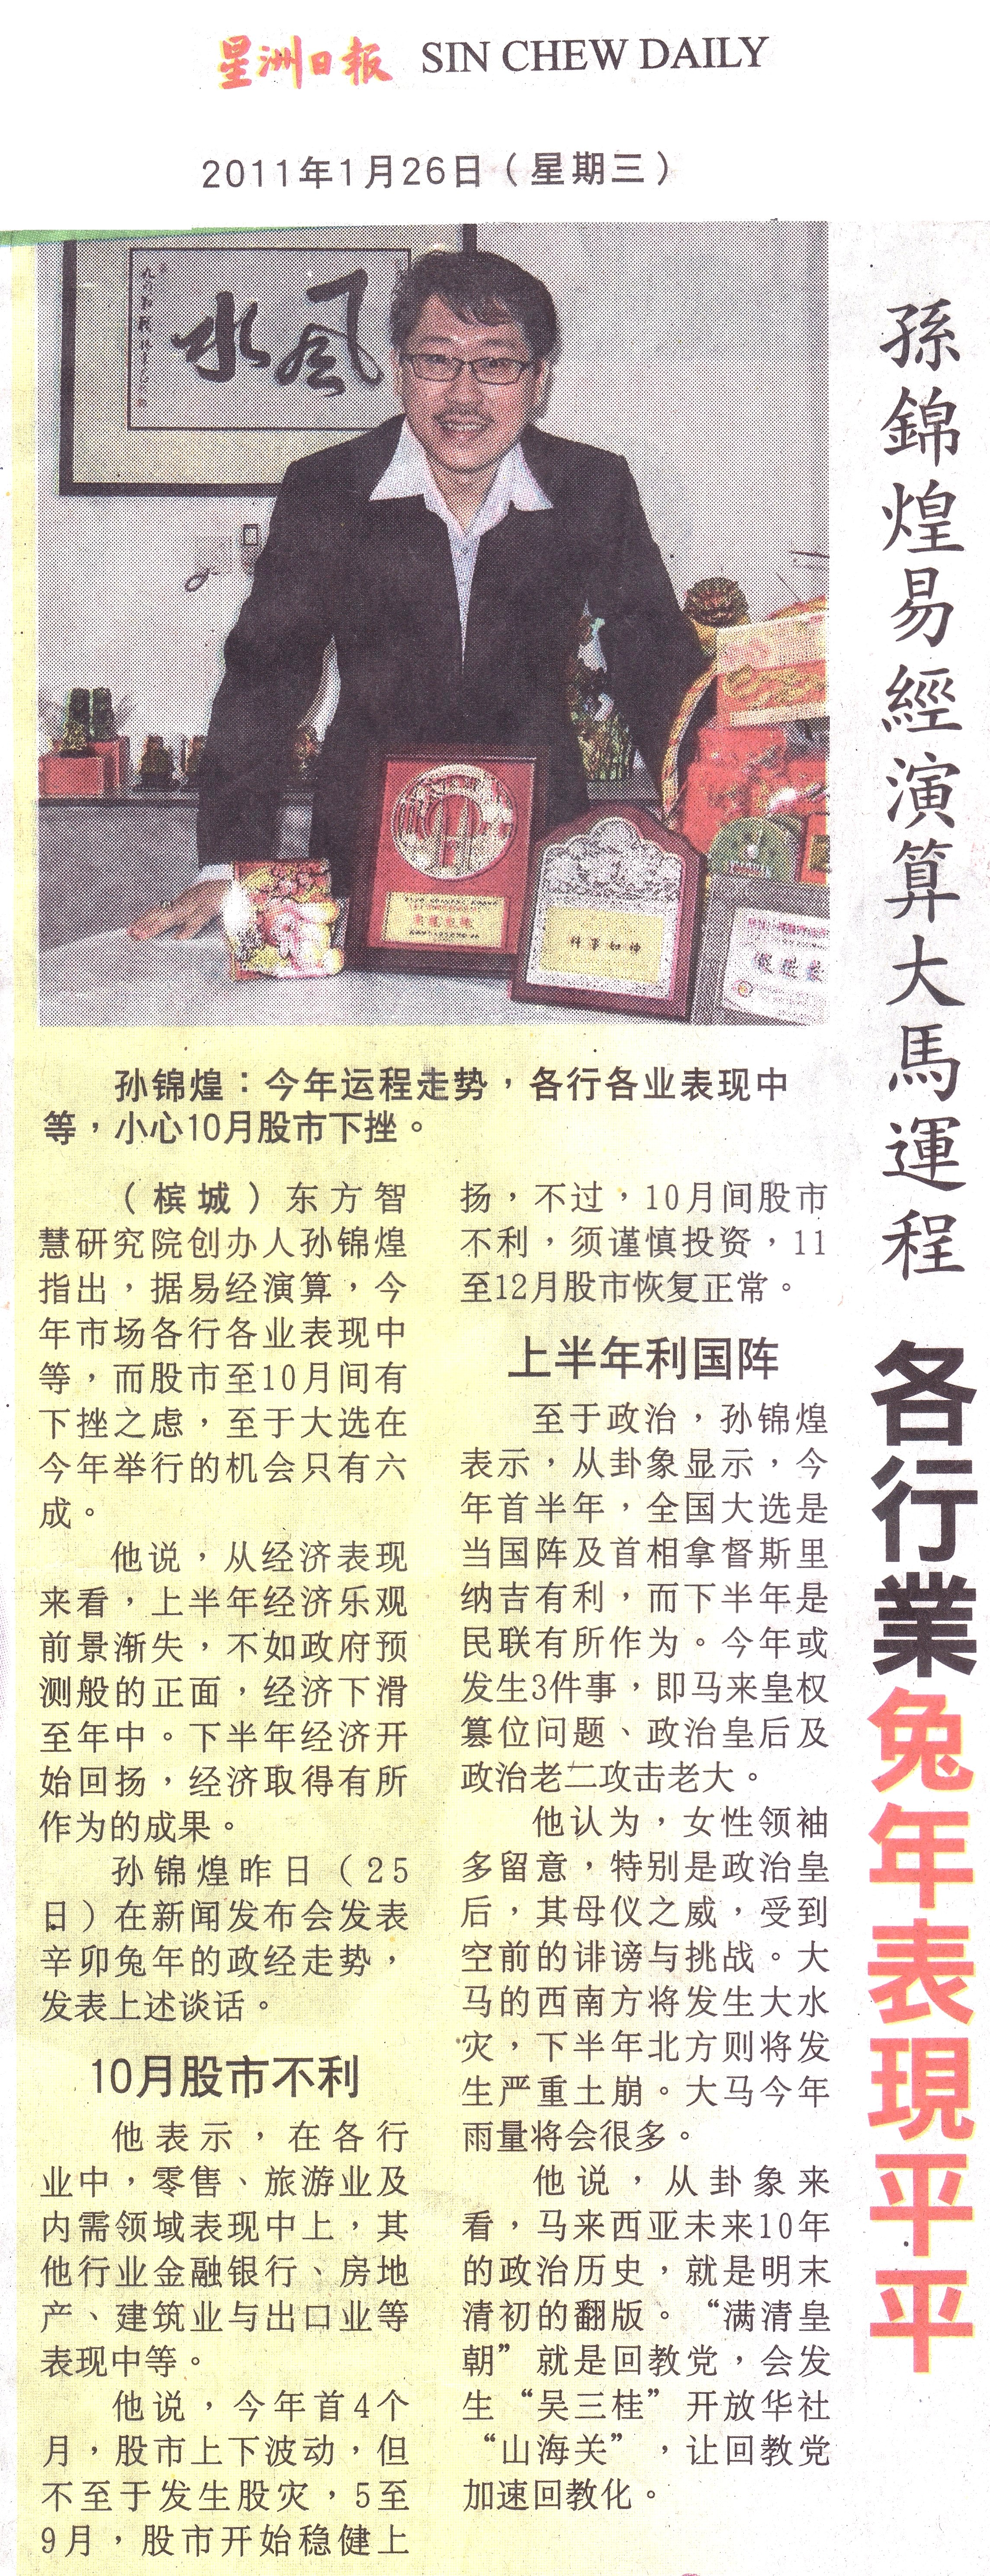 Master Soon By Sin Chew Daily, The Largest Chinese Press In Malaysia.